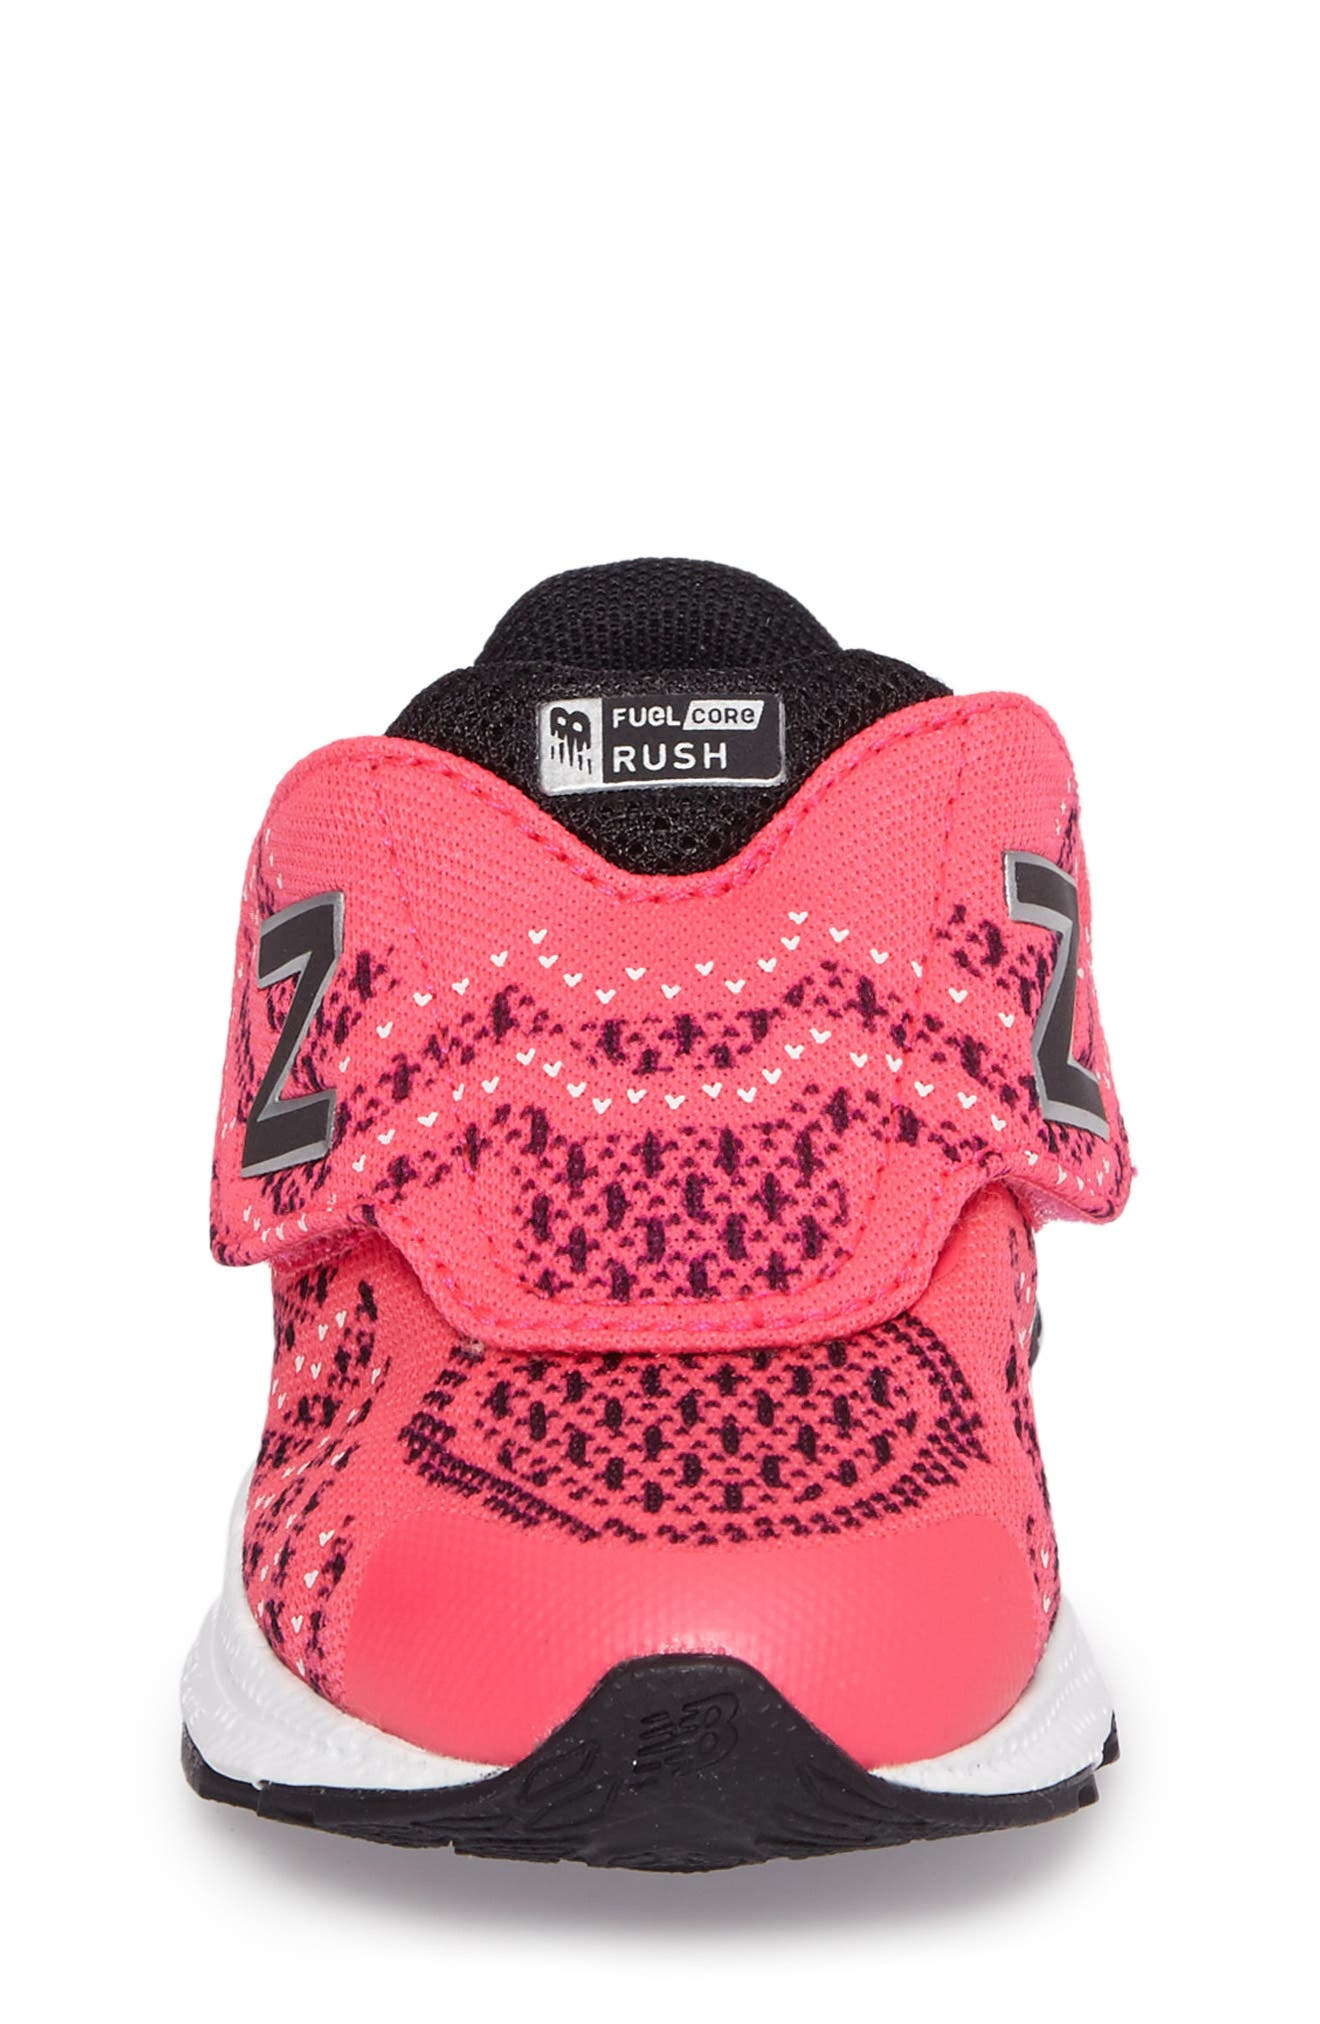 FuelCore Rush v3 Knit Sneaker,                             Alternate thumbnail 4, color,                             Pink